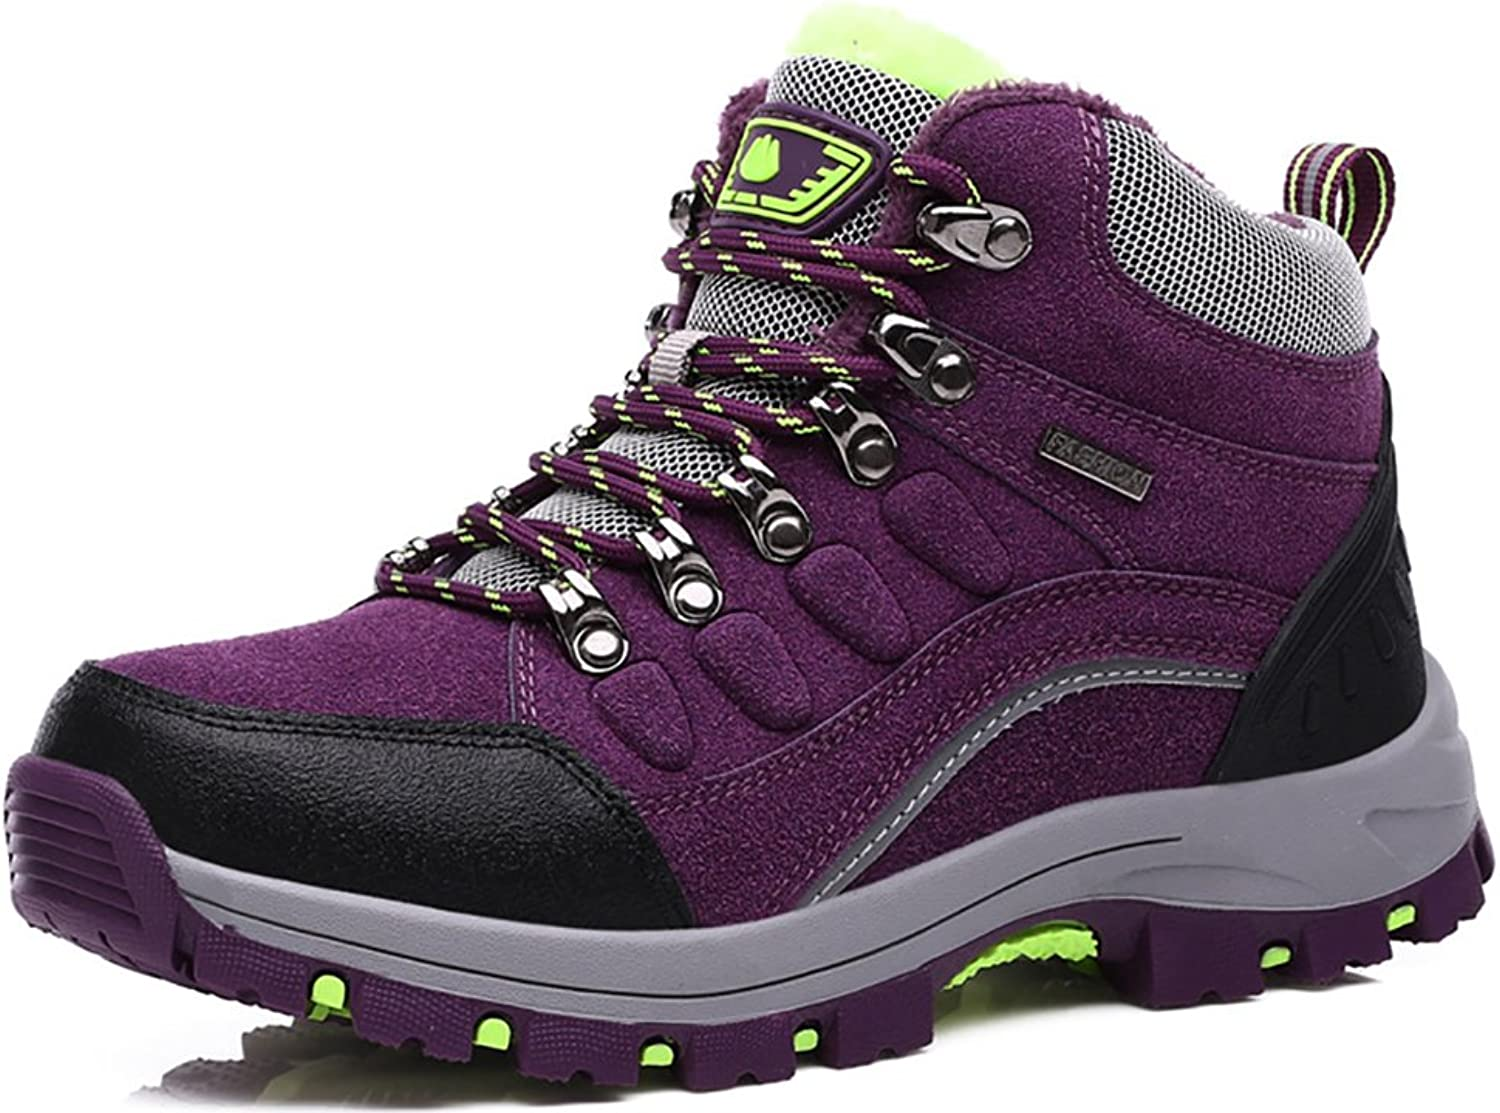 Odema Womens Snow Boots Fur Winter Hiking shoes Outdoor High Top Sneakers